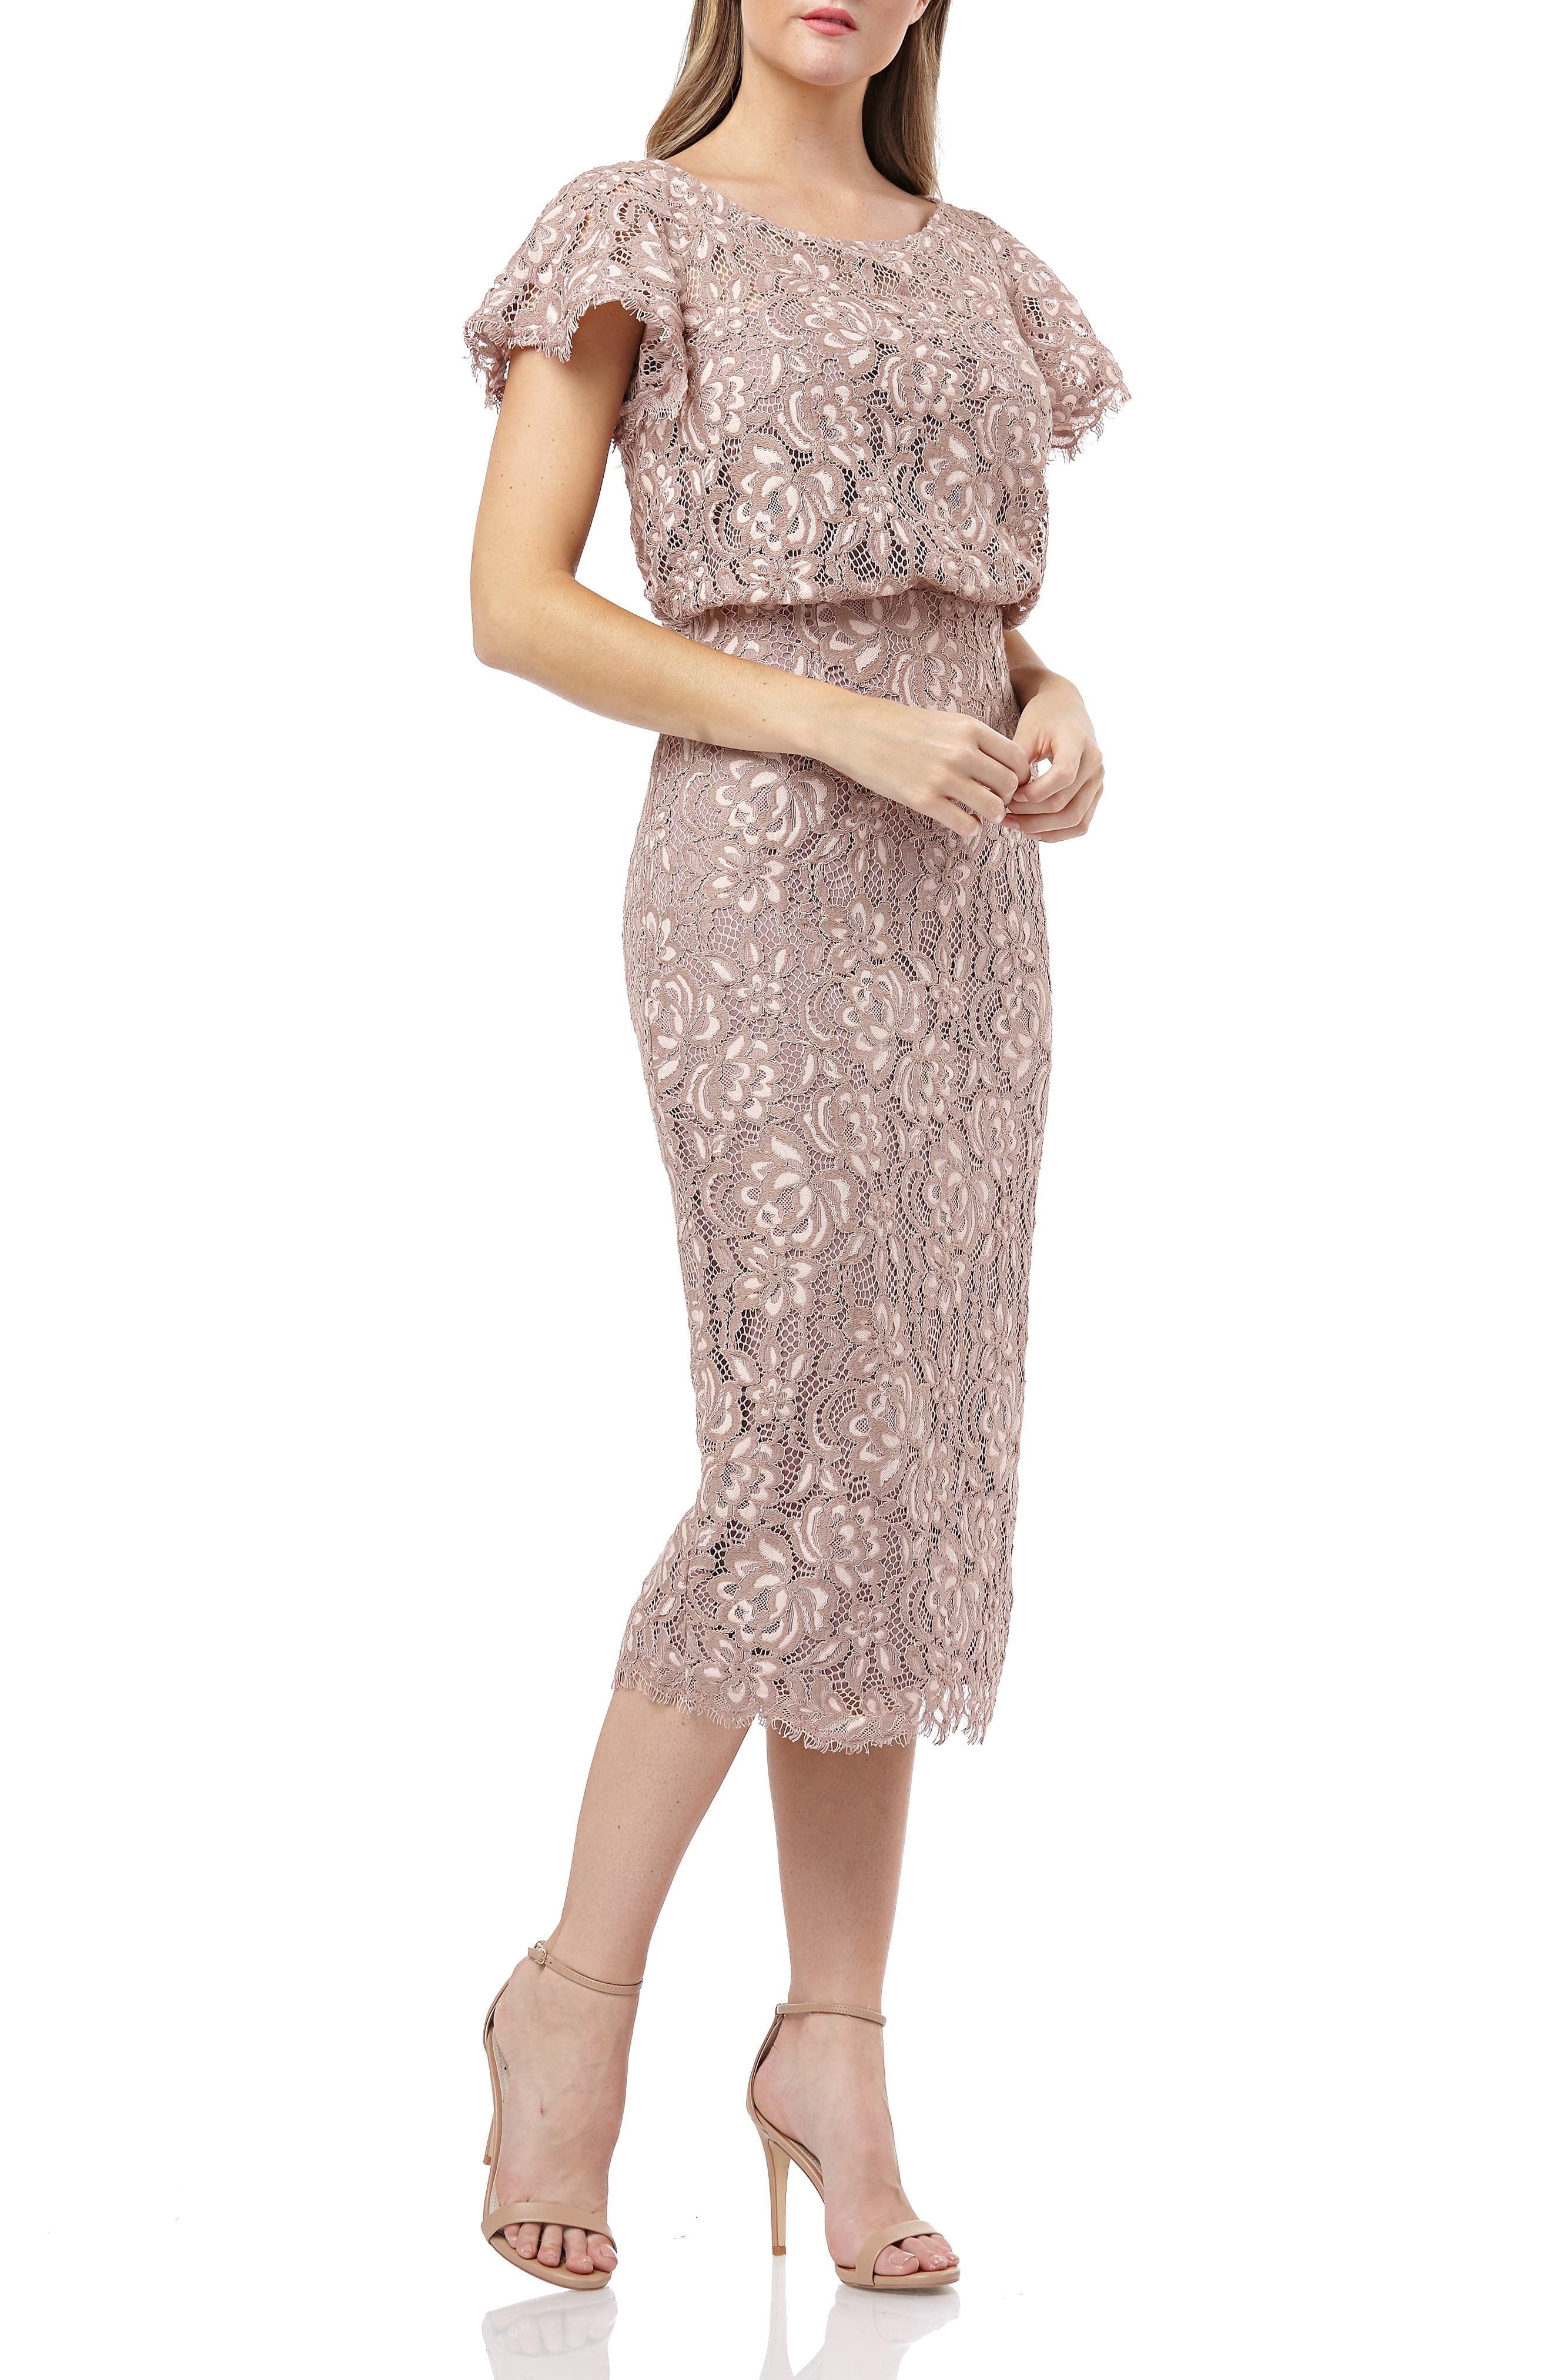 Js Collections Embroidered Lace Blouson Cocktail Dress, Pink